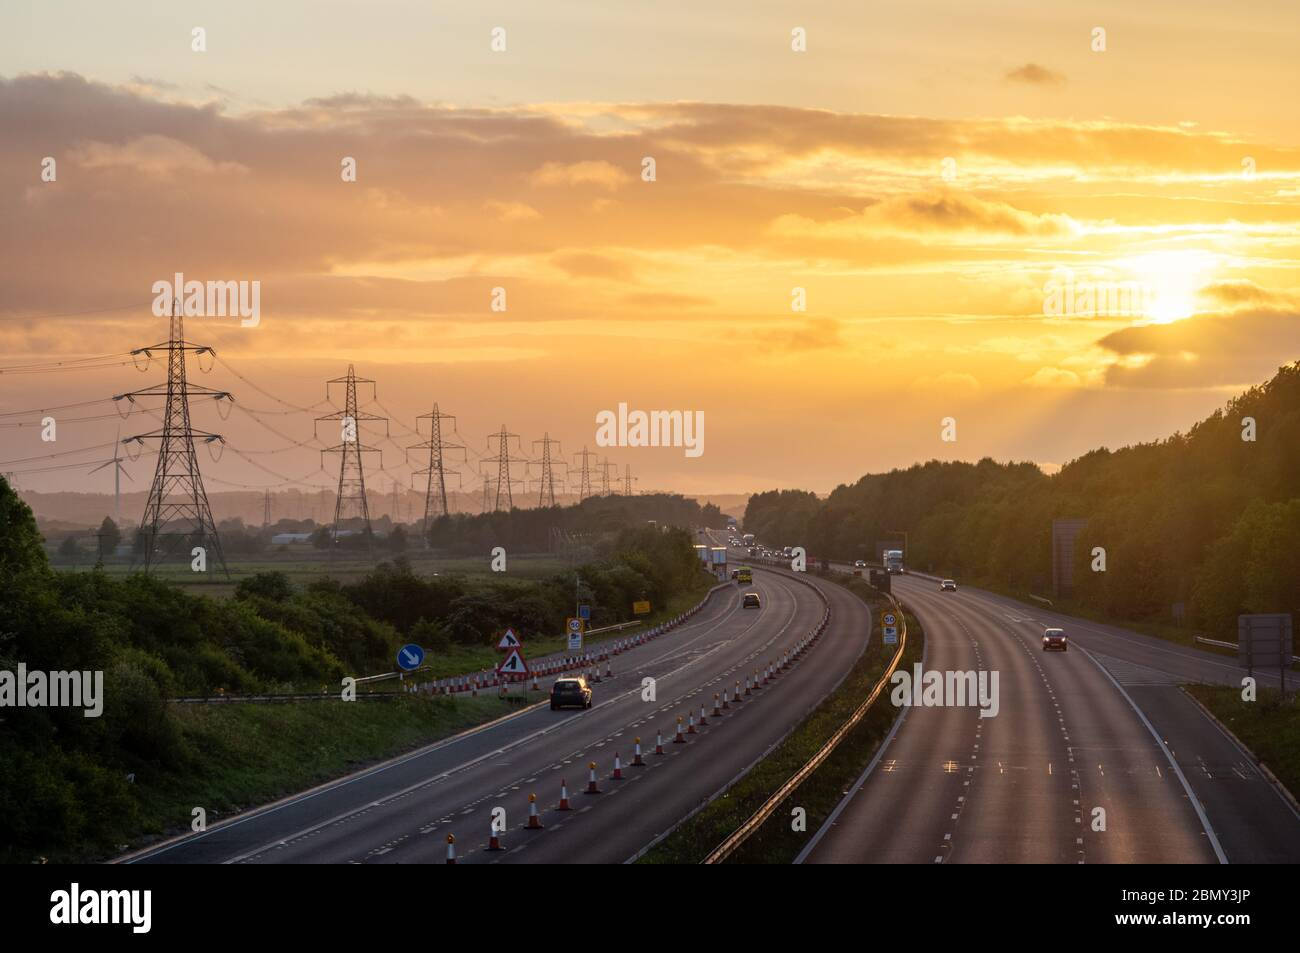 M56 motorway with pylons at sunrise Frodsham Cheshire UK concept early start commute power industry workers back to work daily grind Stock Photo